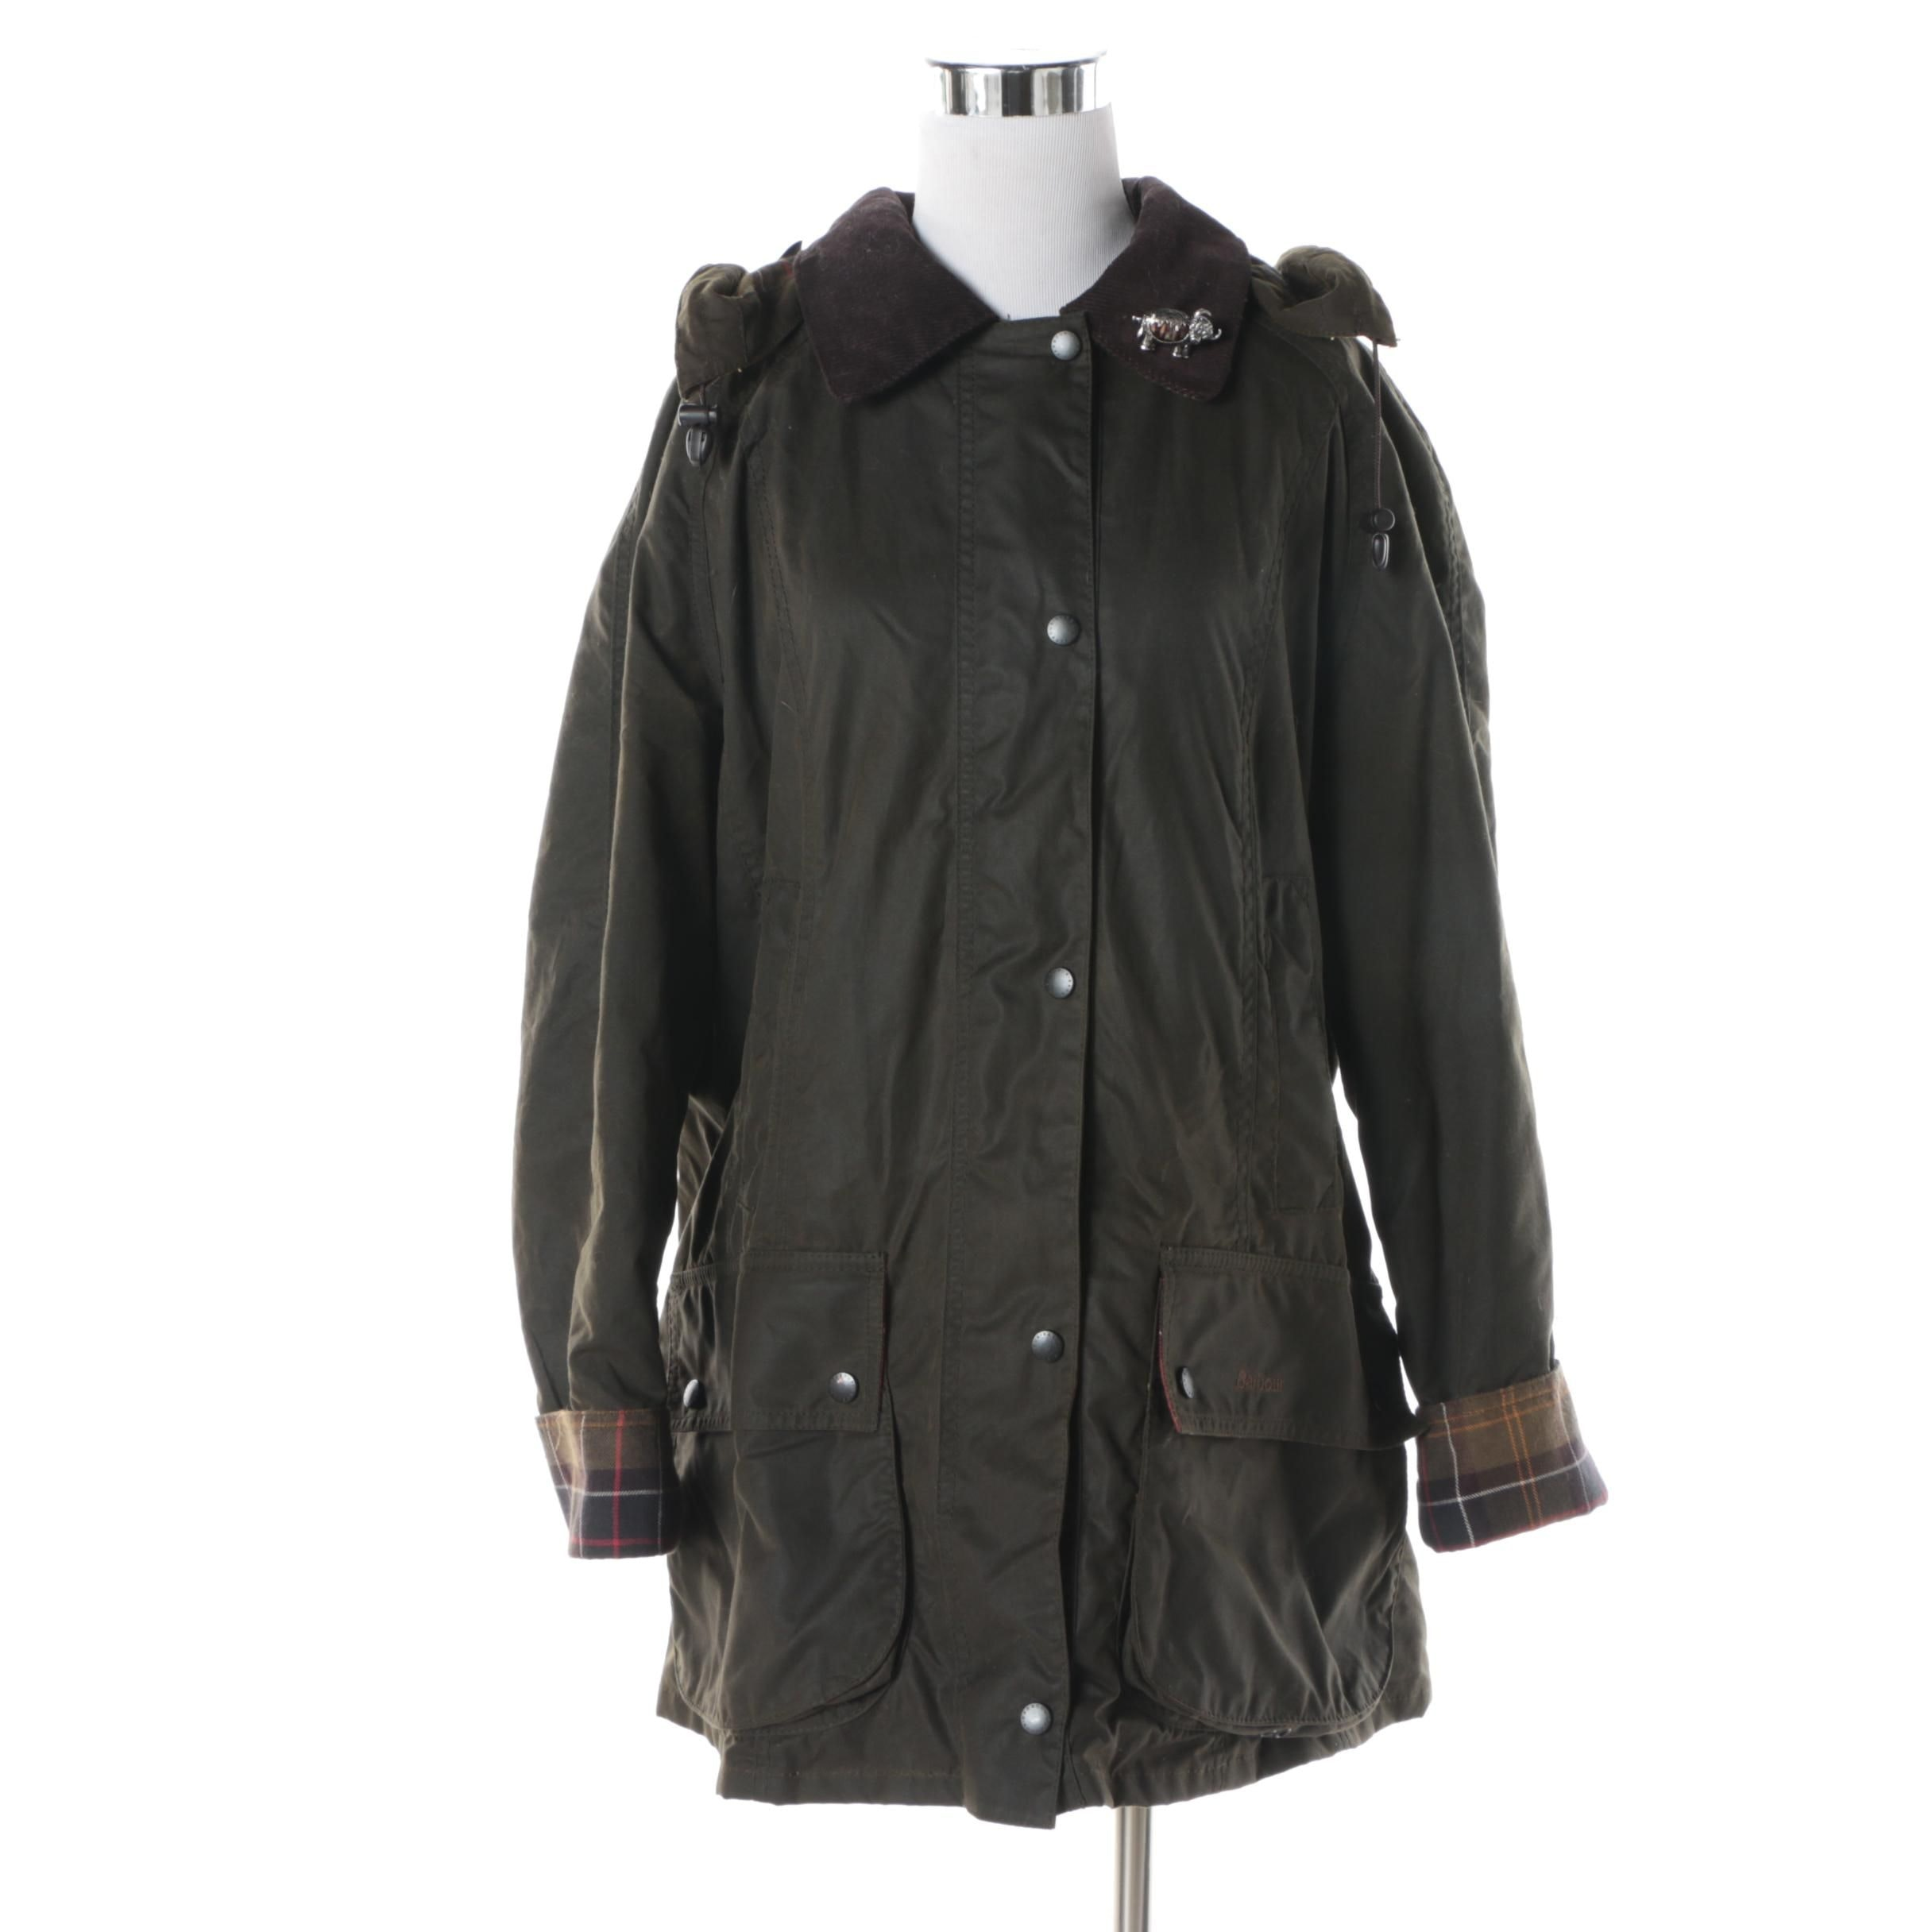 Women's Barbour Olive Green Anorak with Detachable Hood